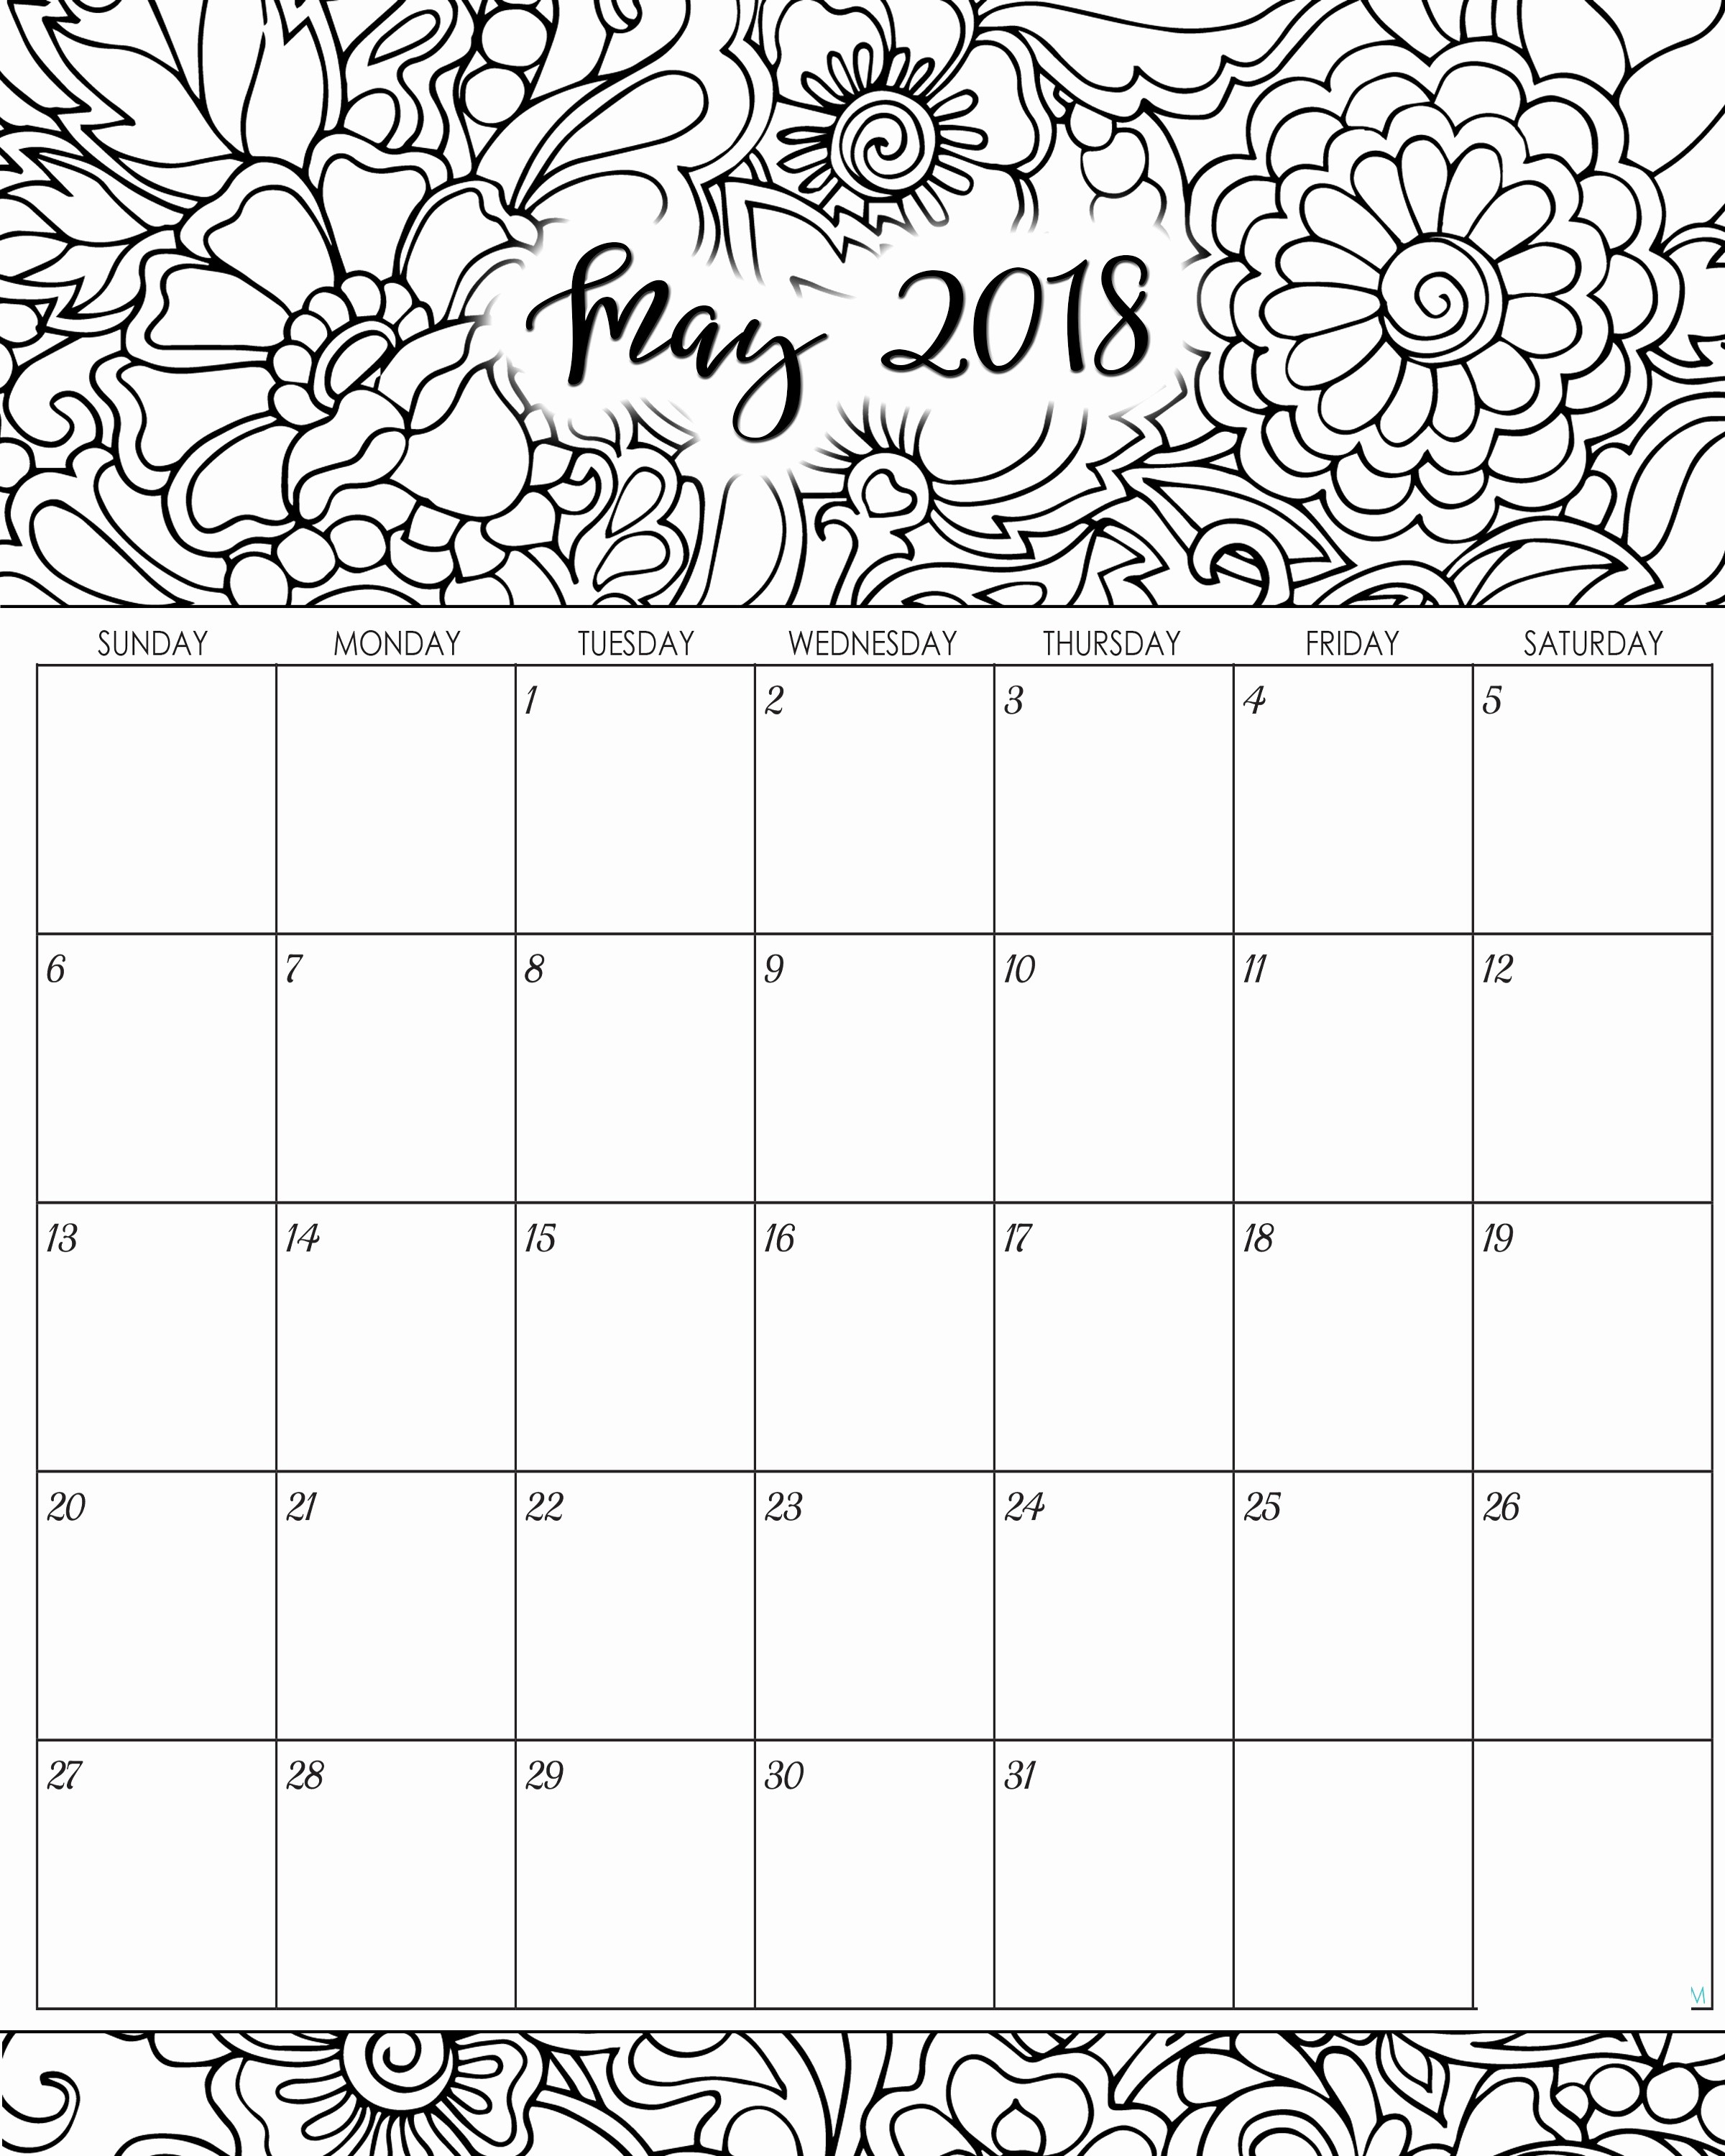 Blank May 2018 Calendar Printable Fresh Blank May 2019 Calendar Free Hd